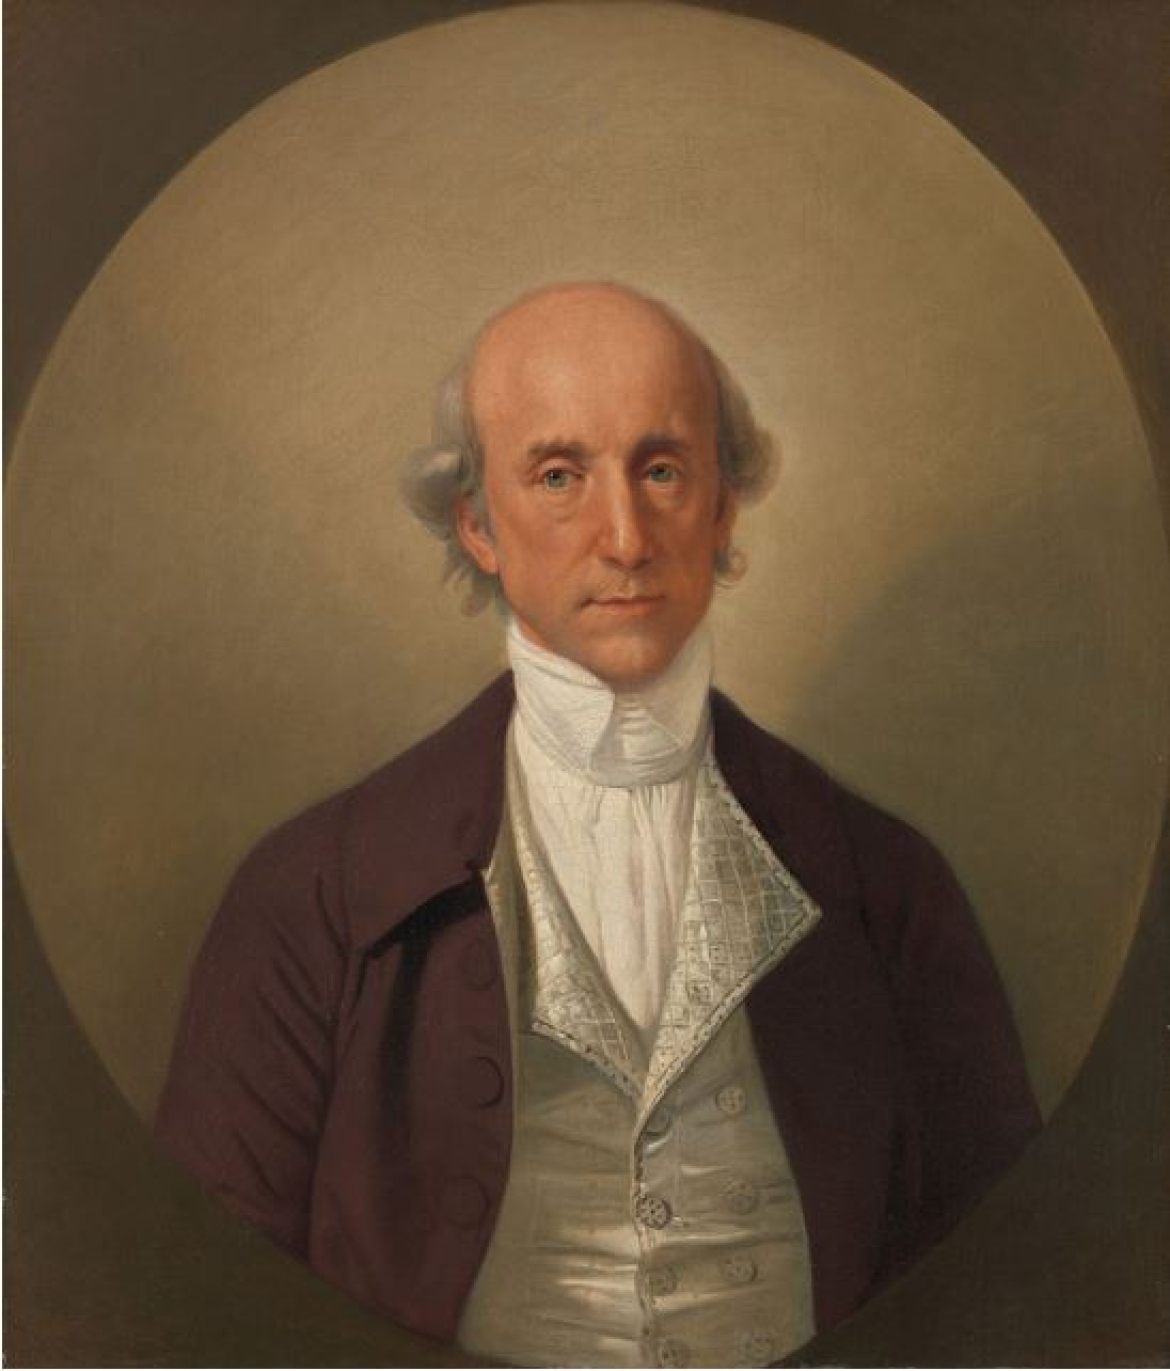 Warren Hastings, c. 1783-84